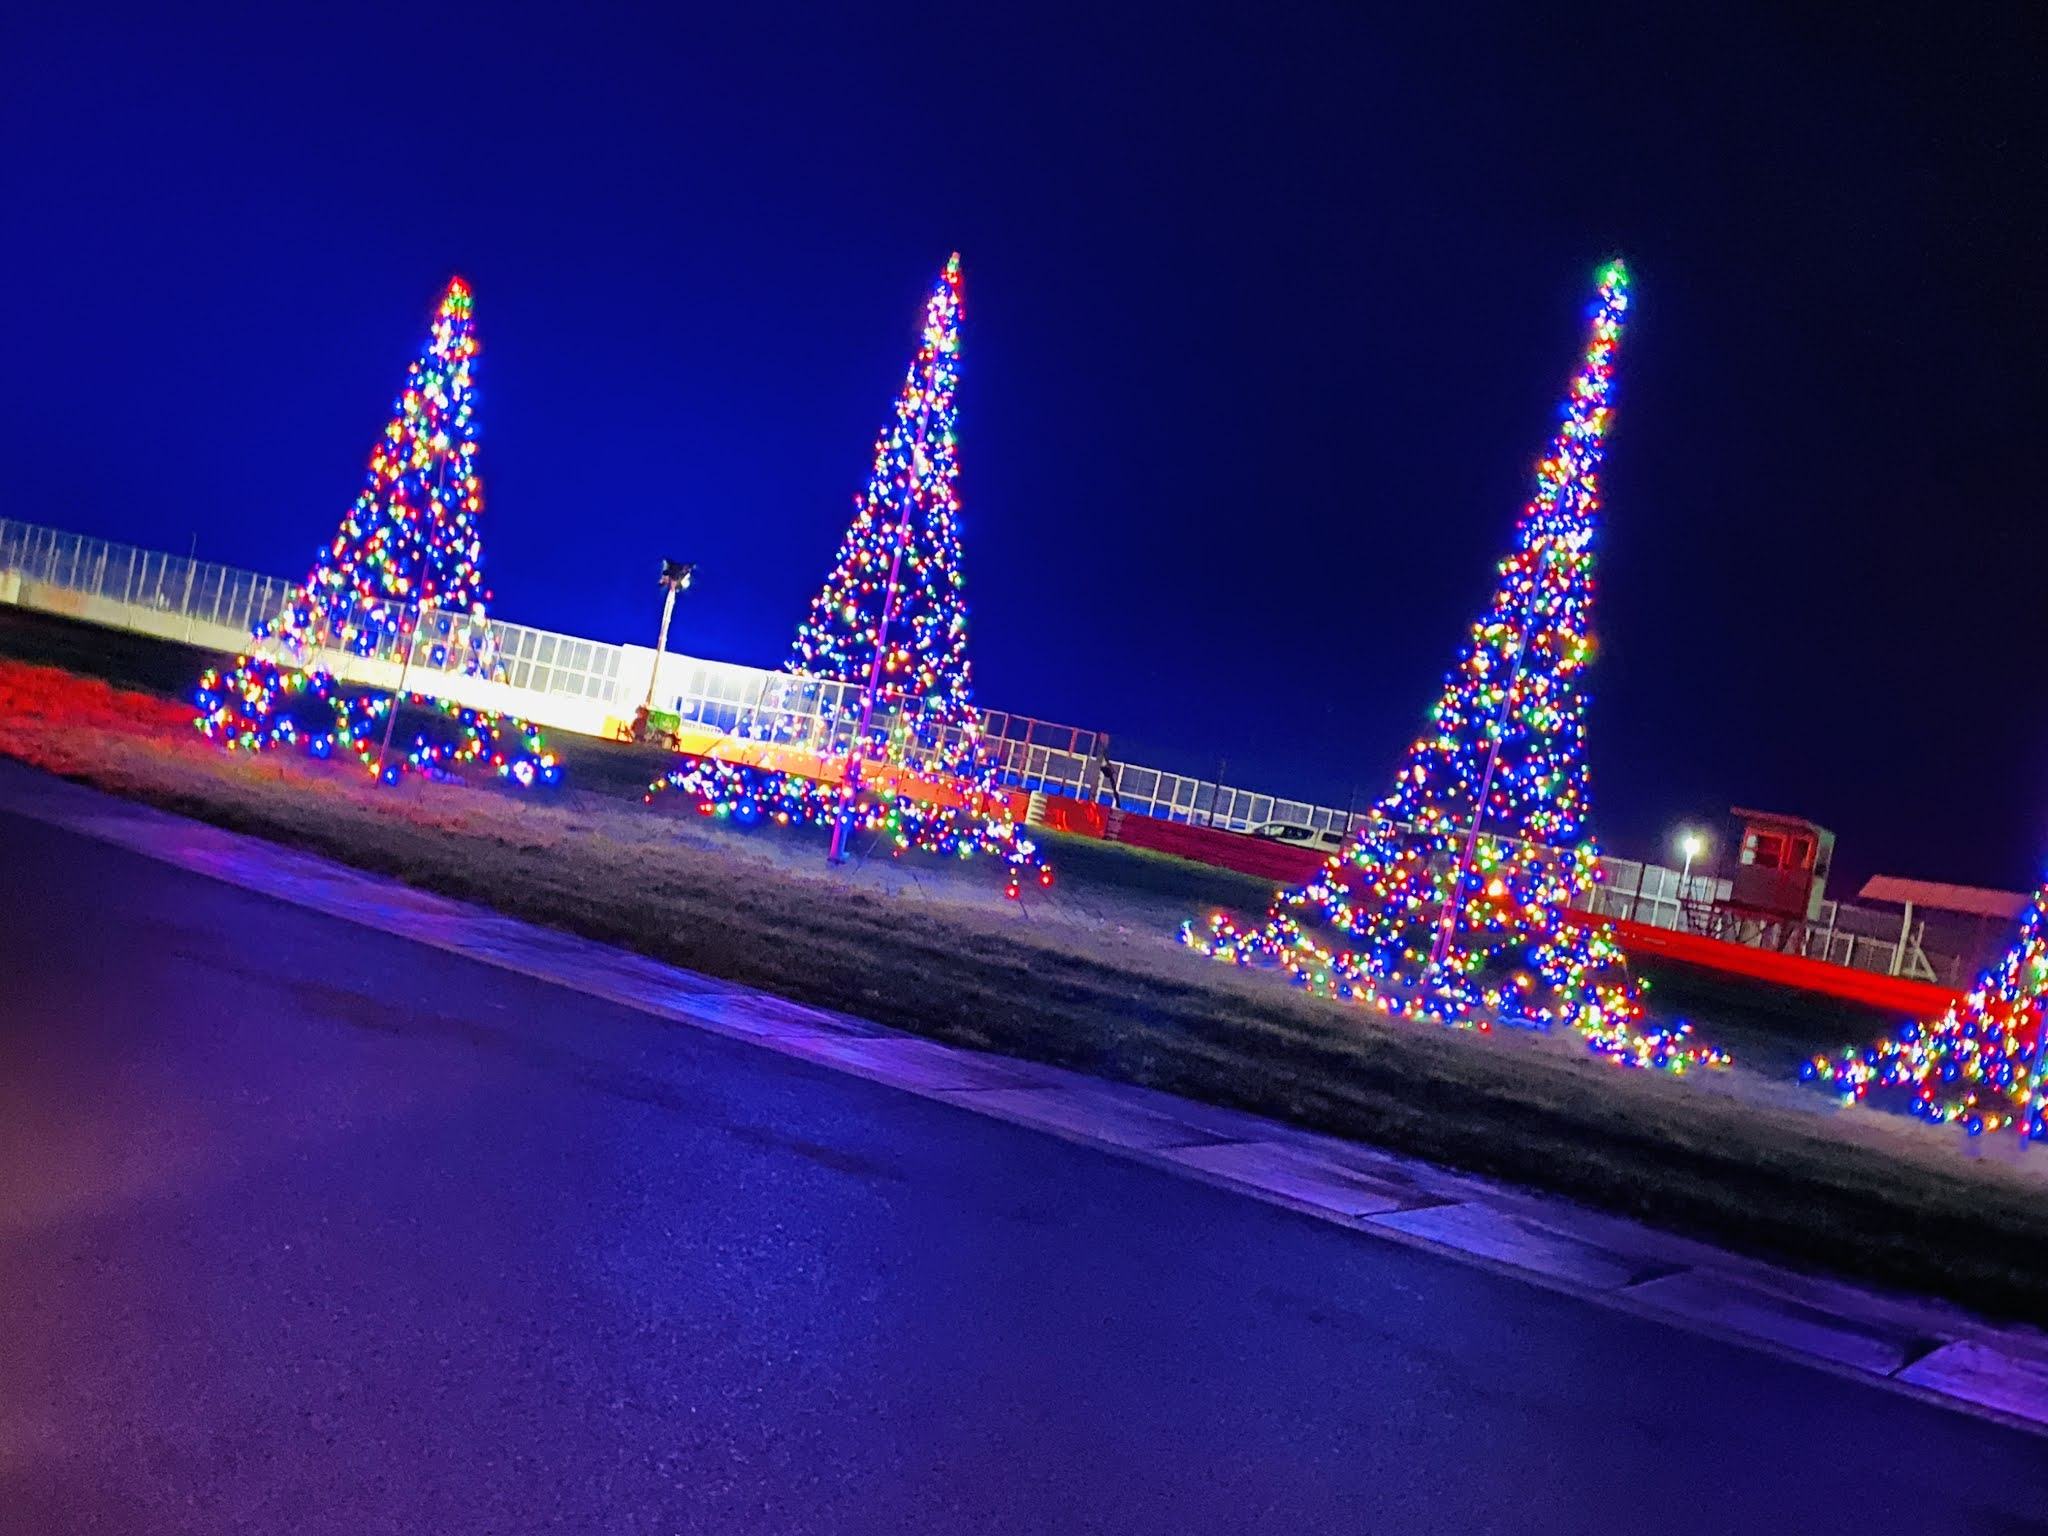 Lap Land Silverstone Review Christmas trees and lights